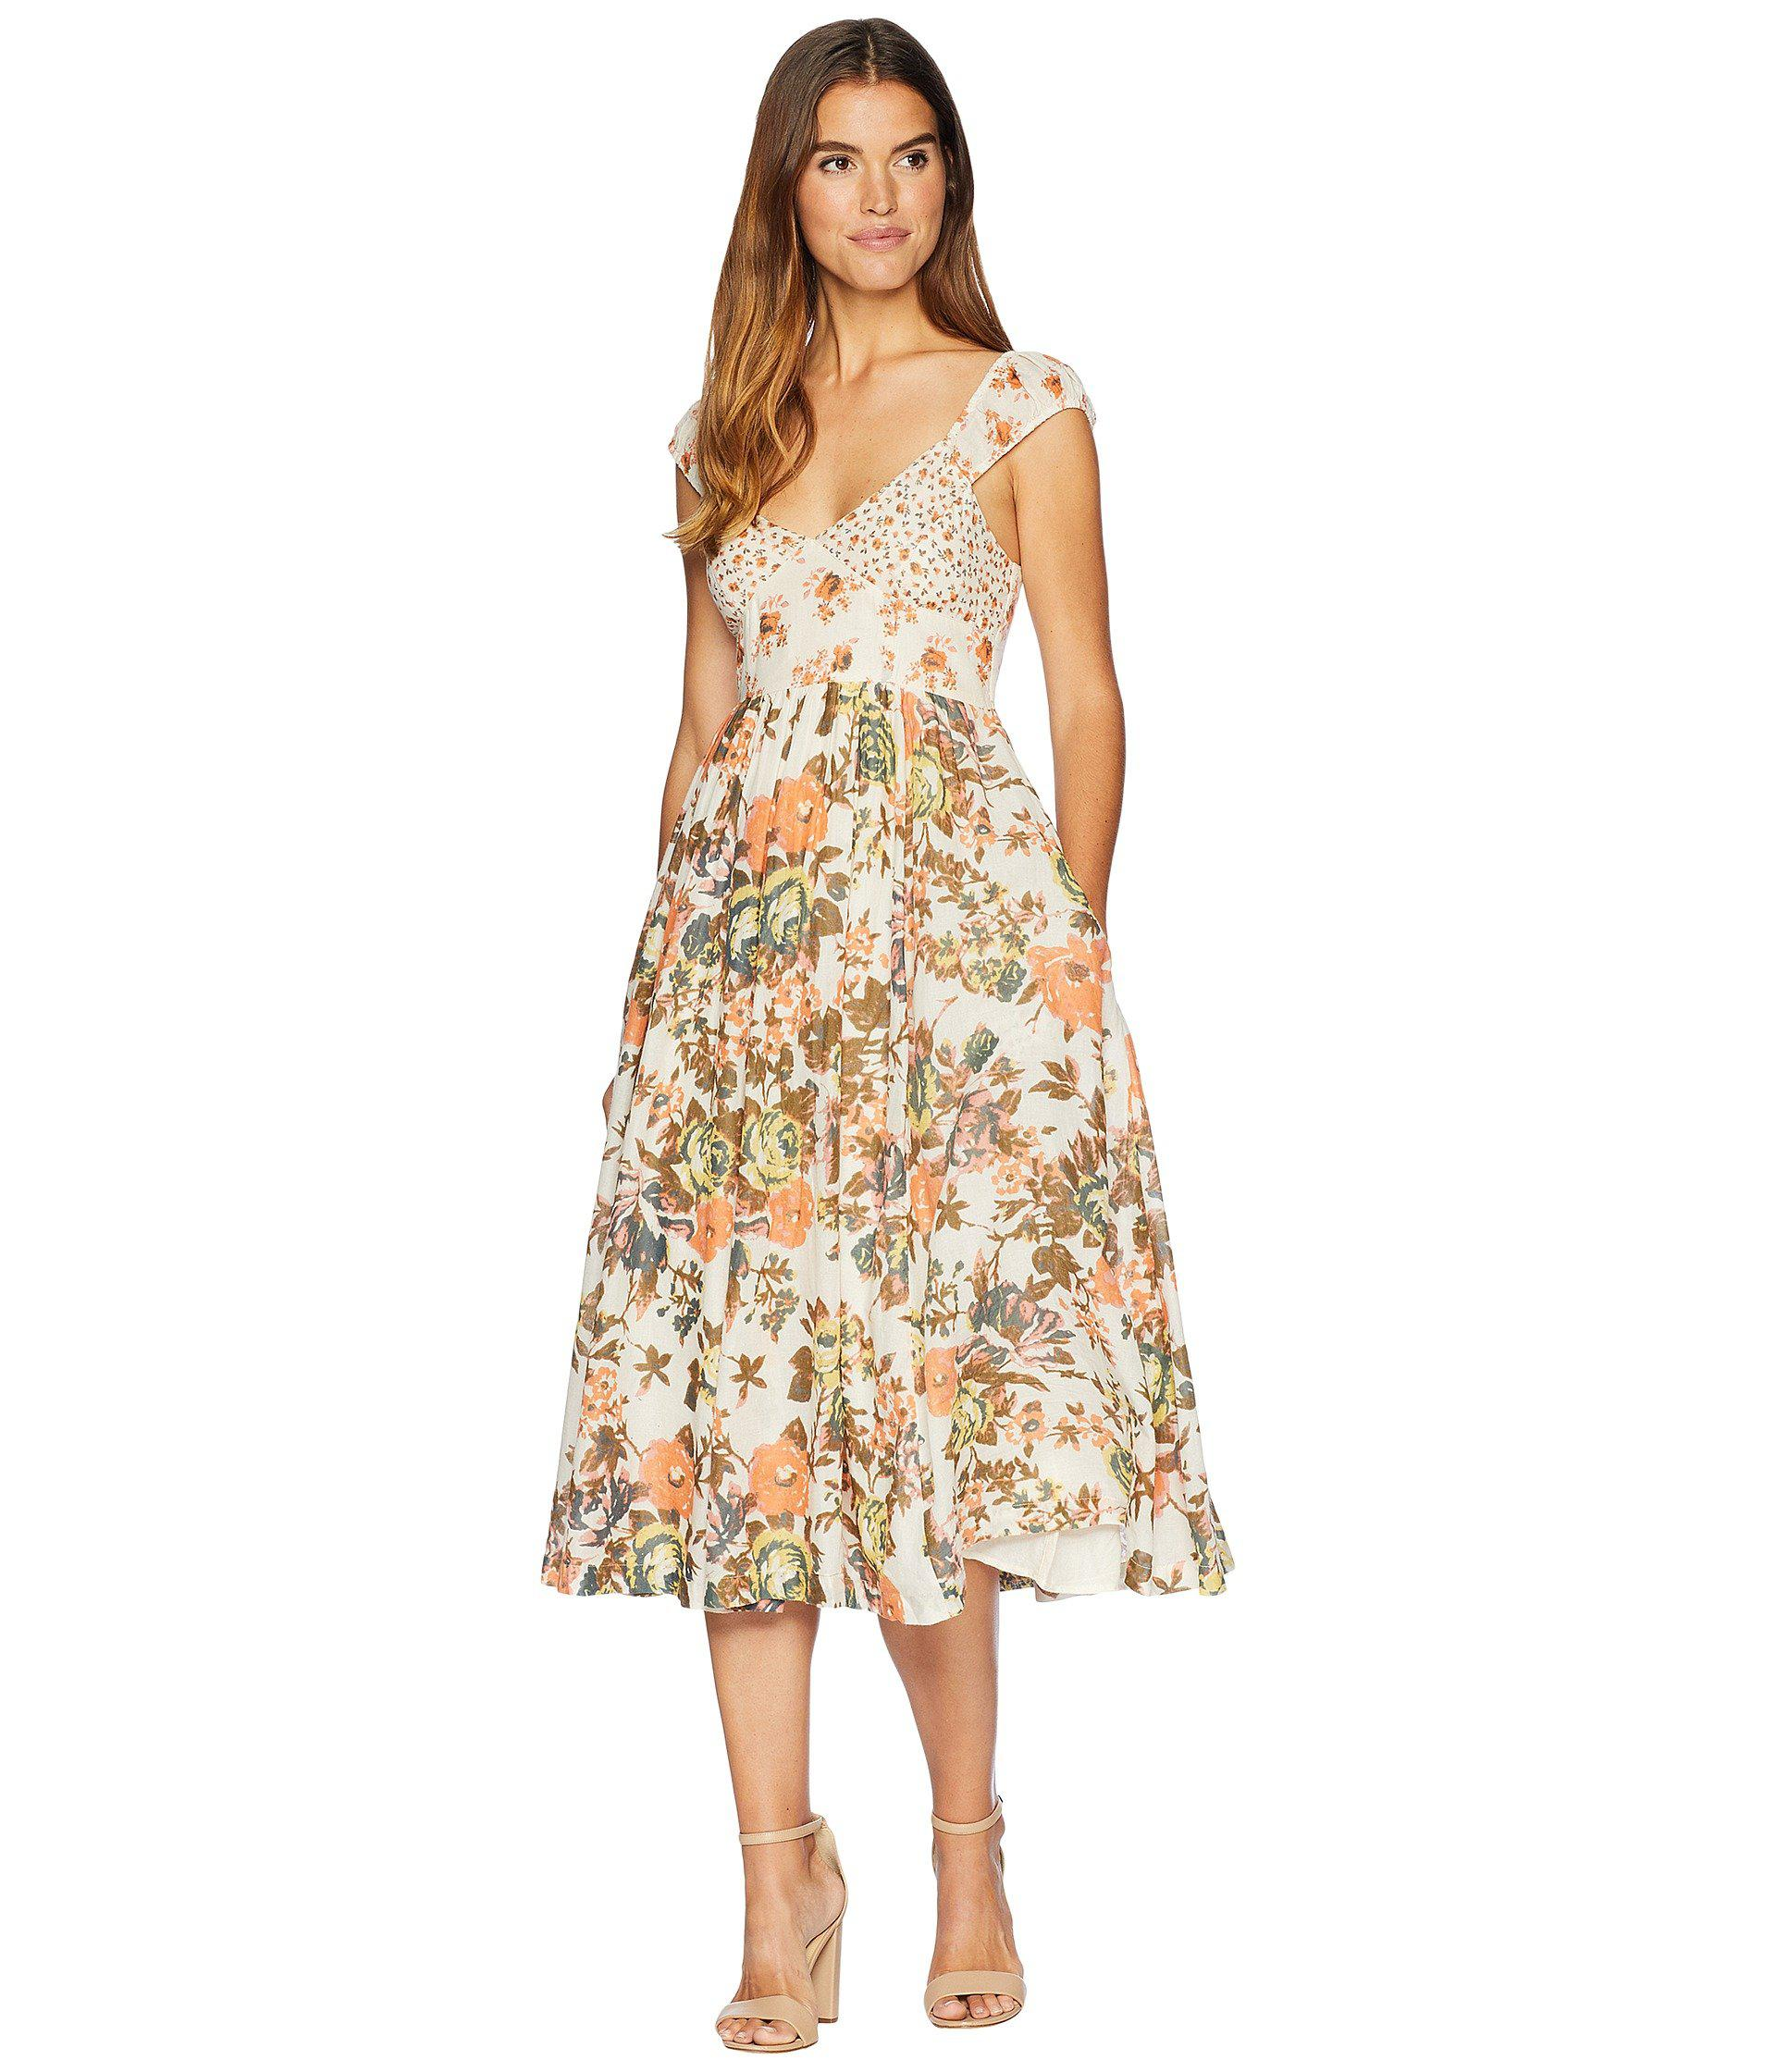 00344a27f Lyst - Free People Love You Midi in White - Save 62%